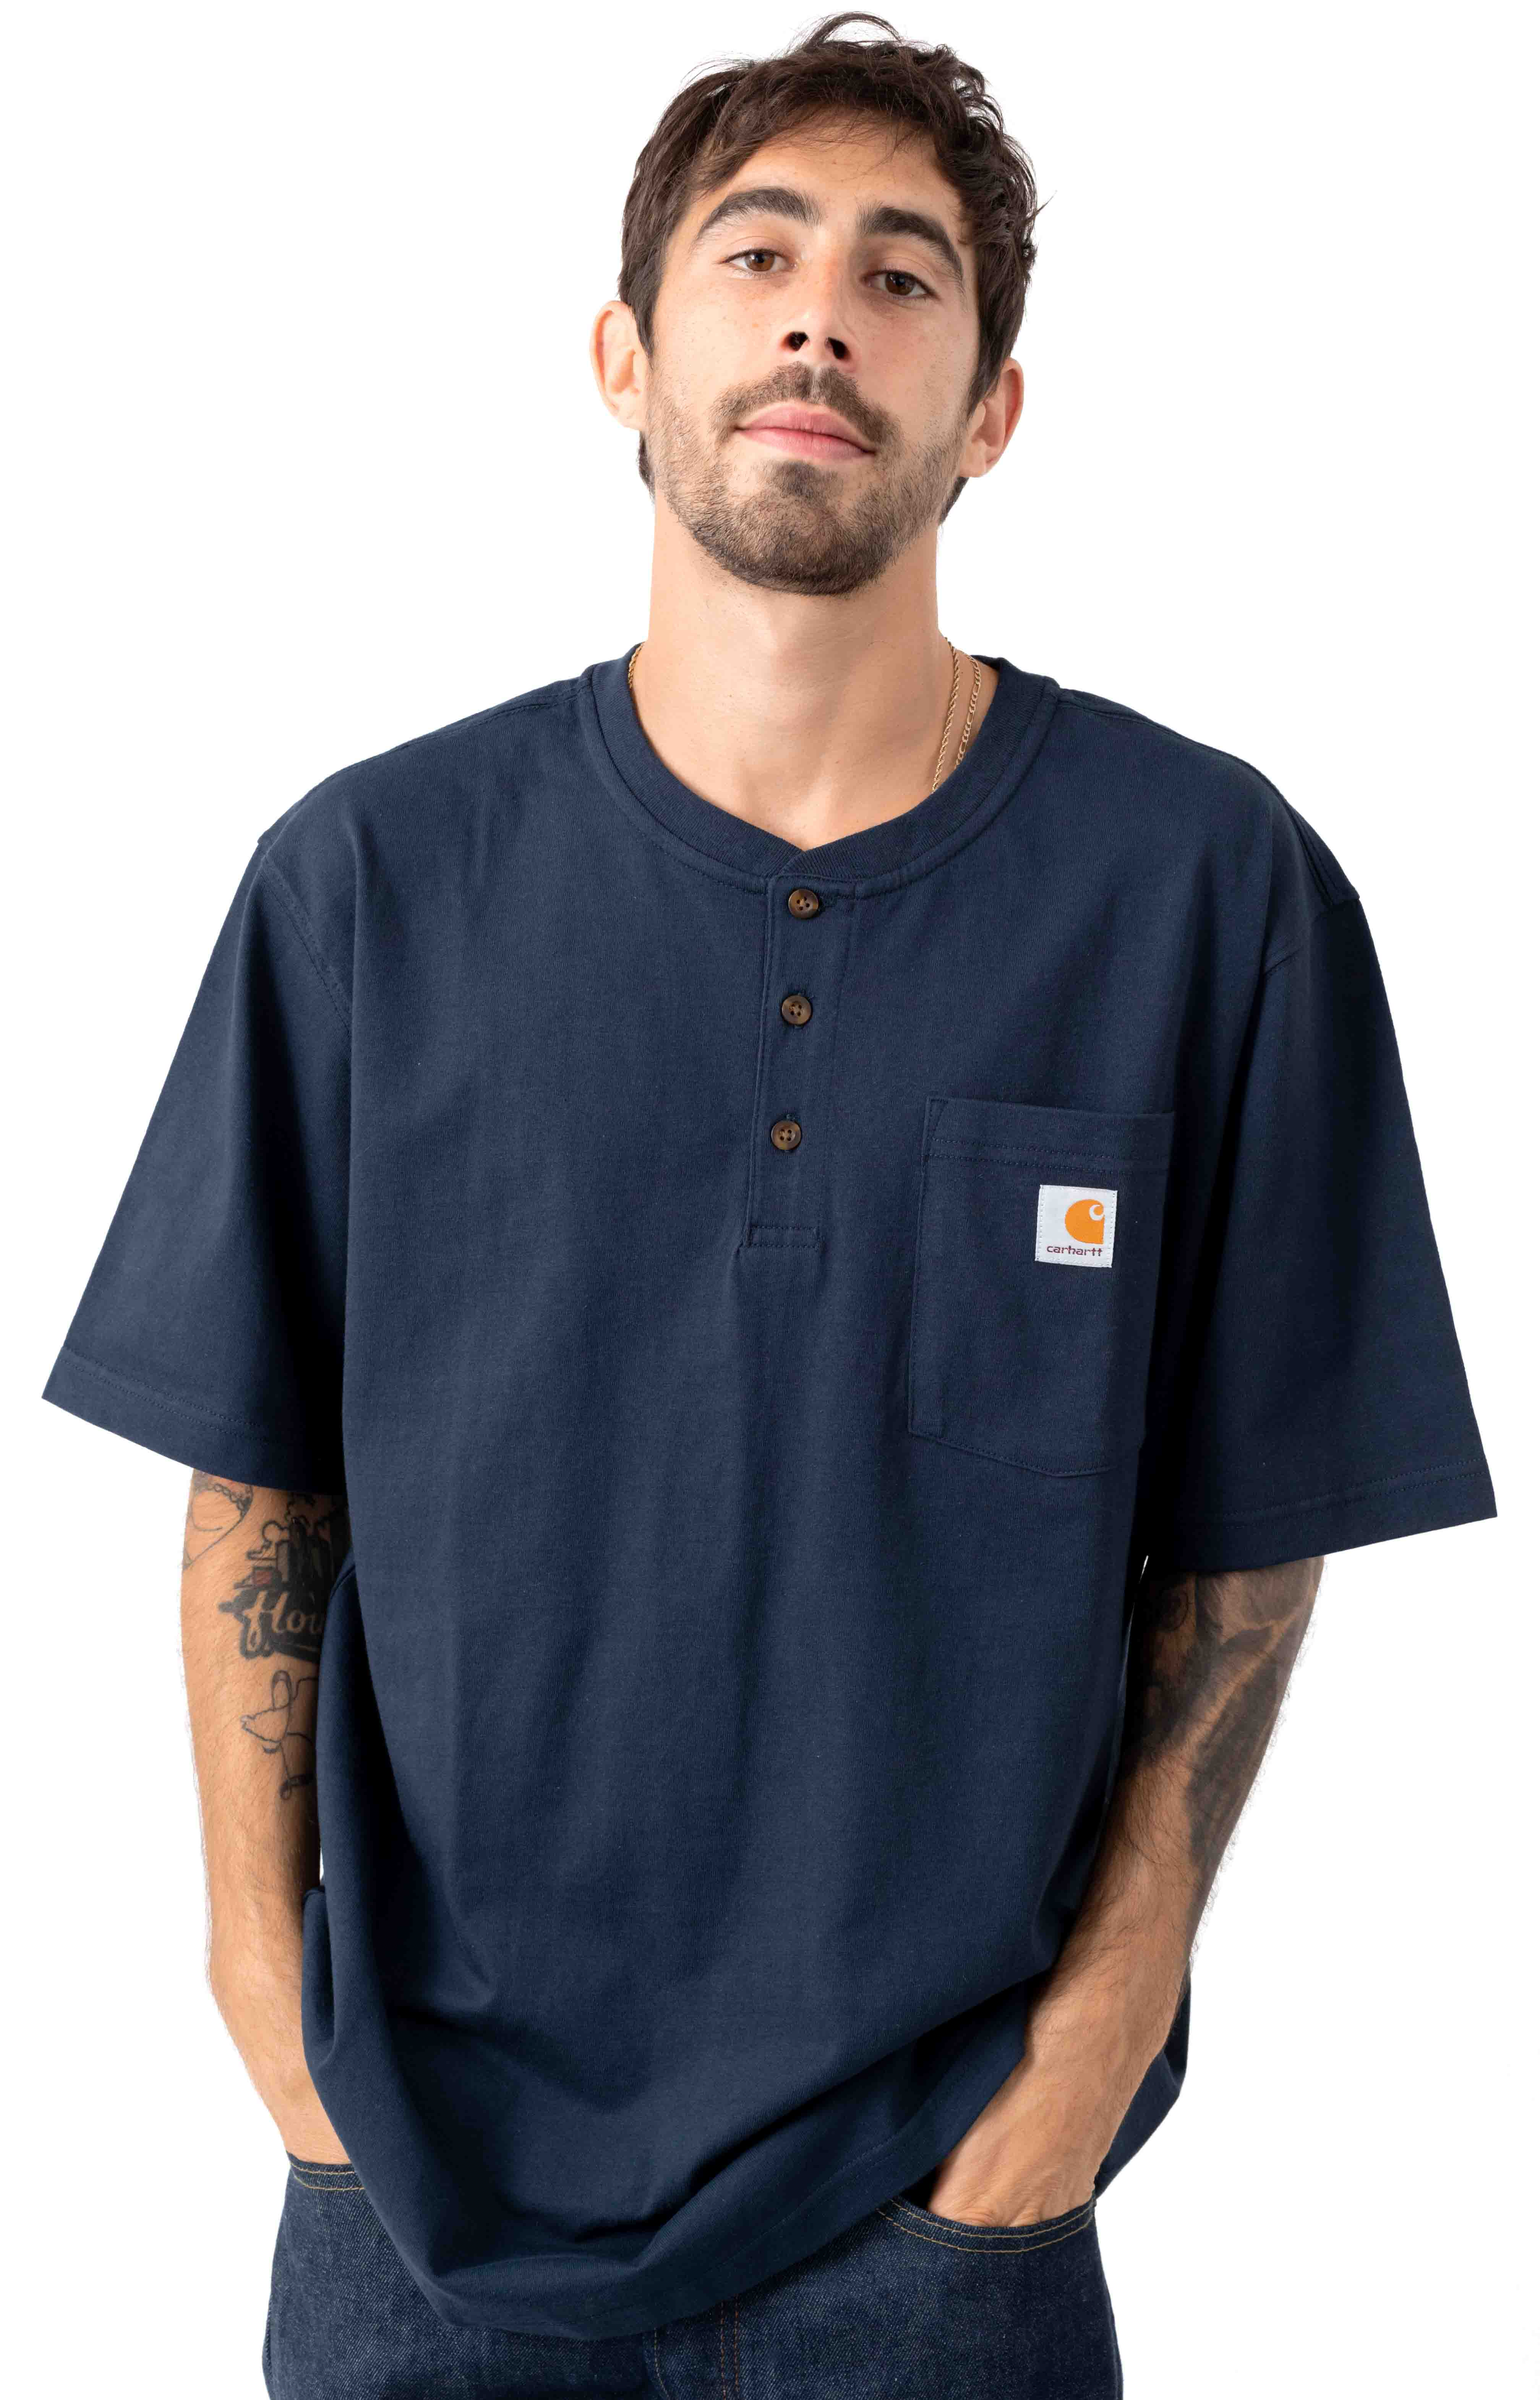 (K84) S/S Workwear Henley T-Shirt - Navy